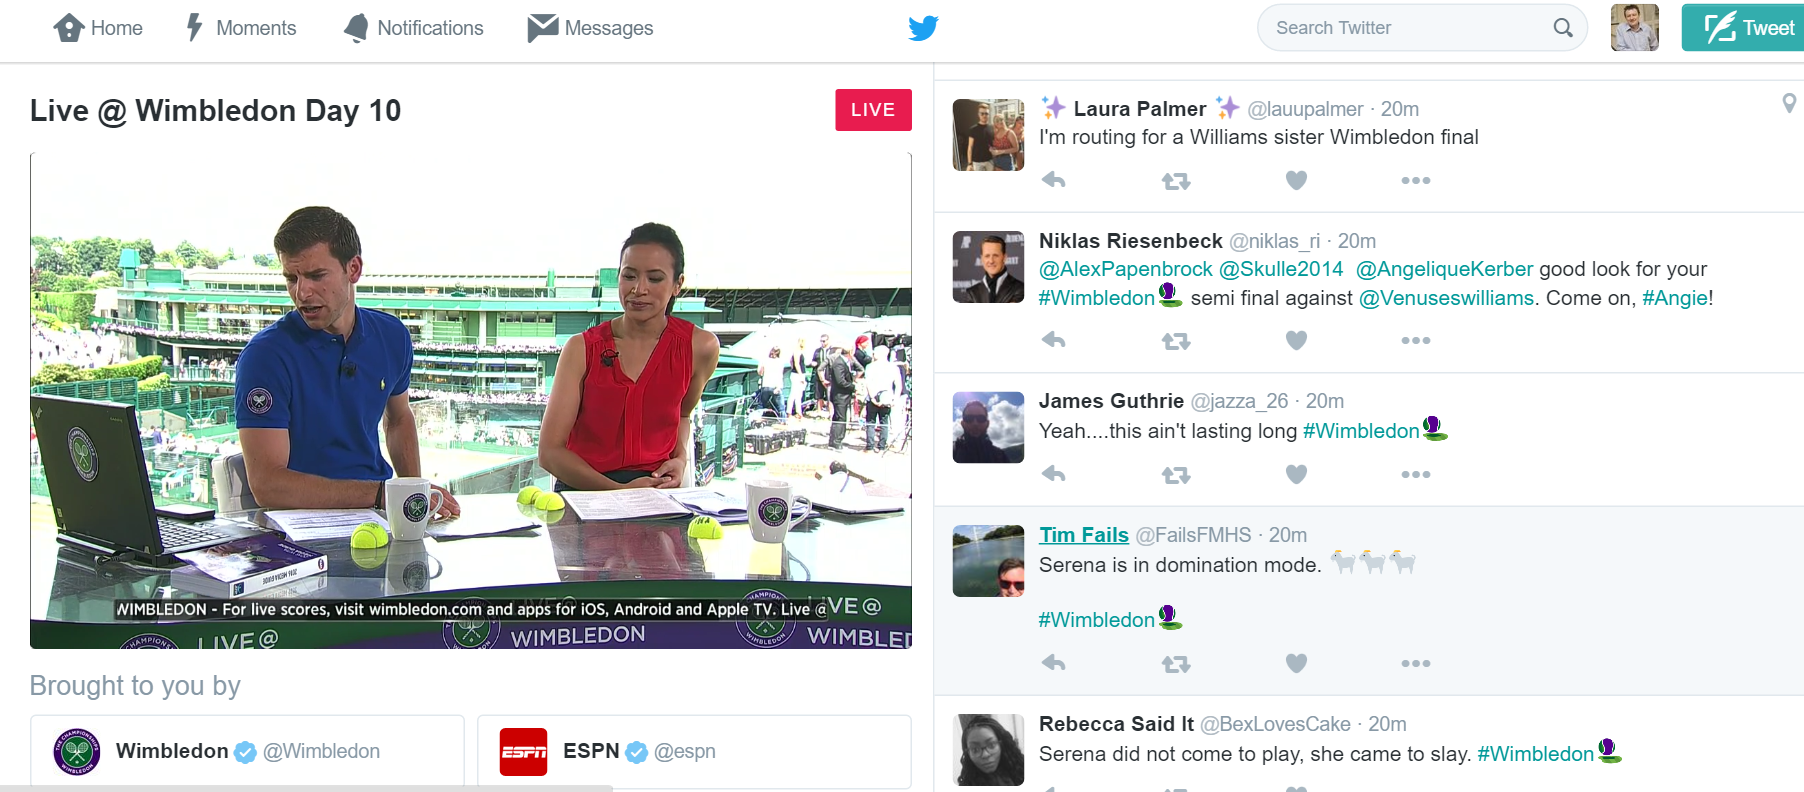 Twitter Livestreaming From Wimbledon